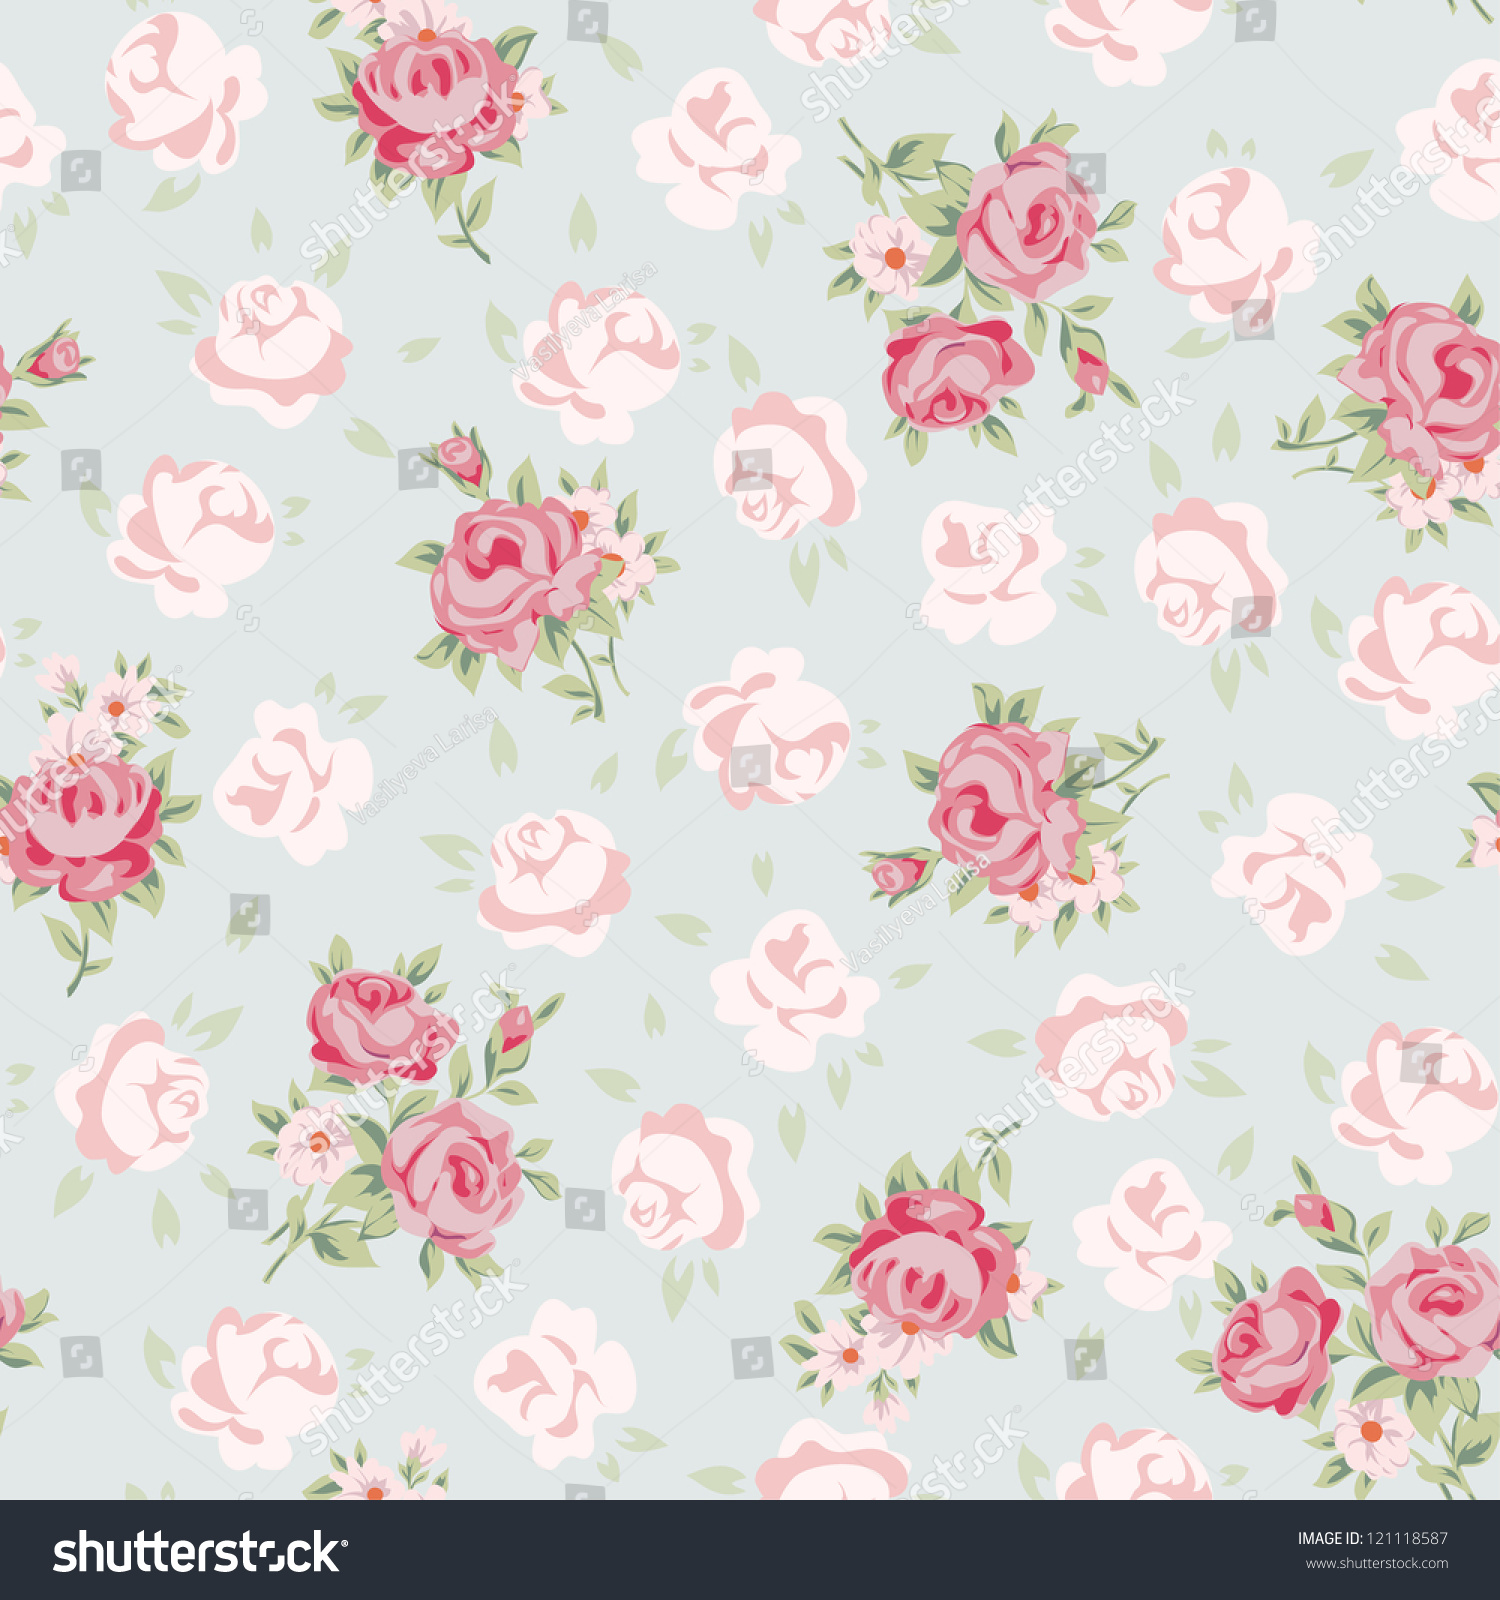 floral seamless vintage pattern shabby chic stock vector 121118587